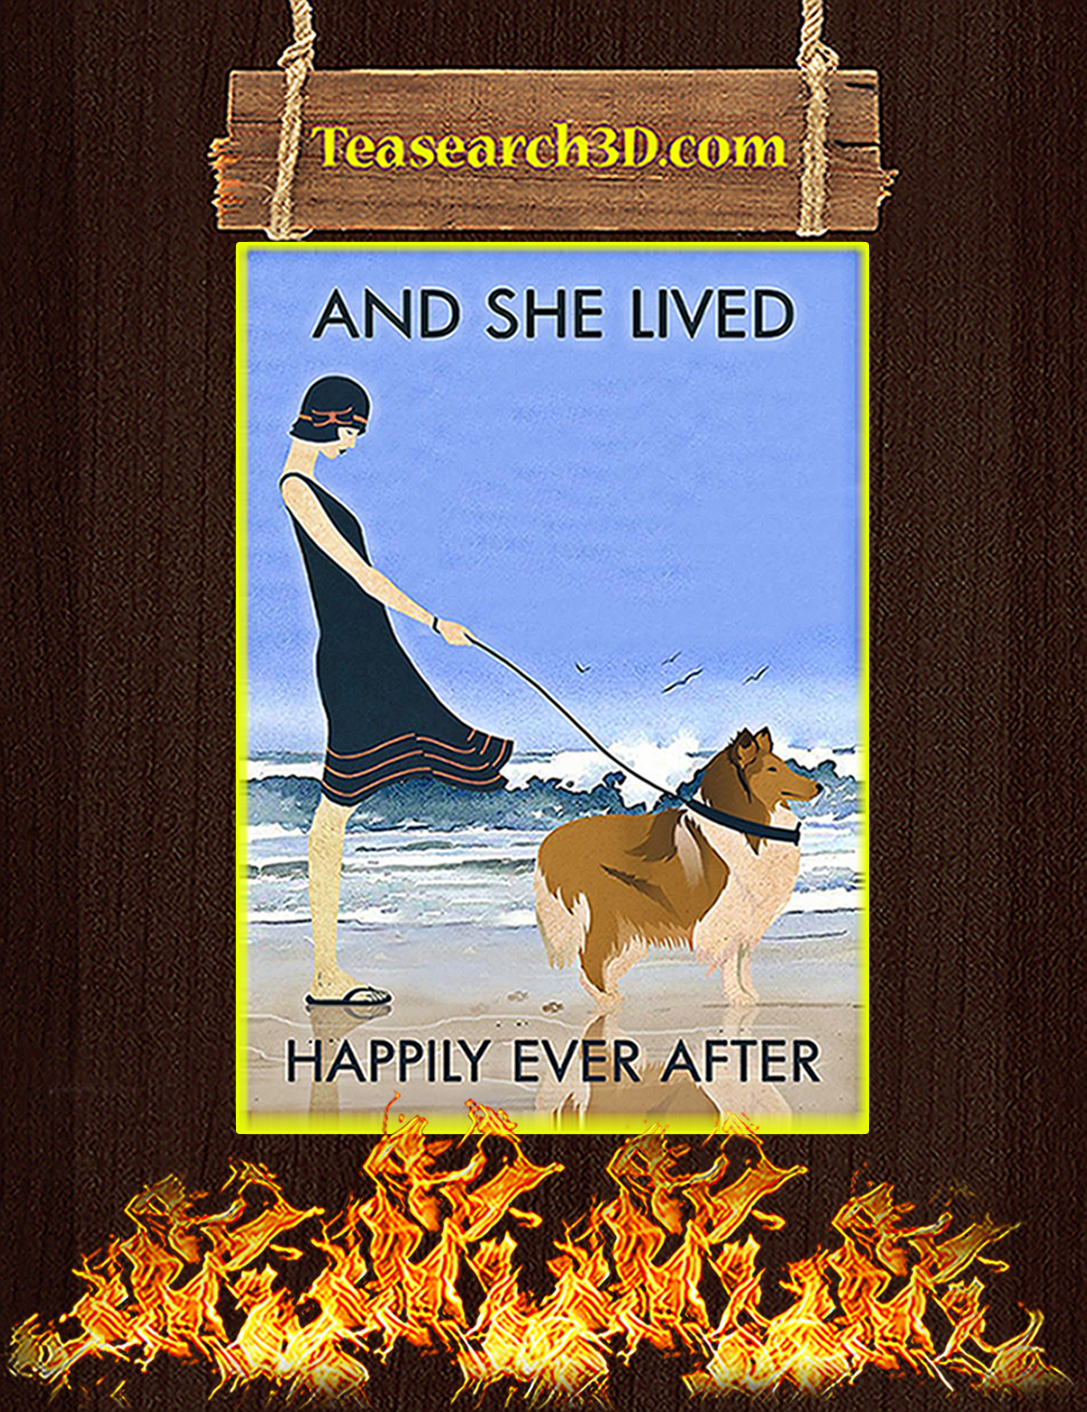 Beach and collie dog and she lived happily ever after poster A2